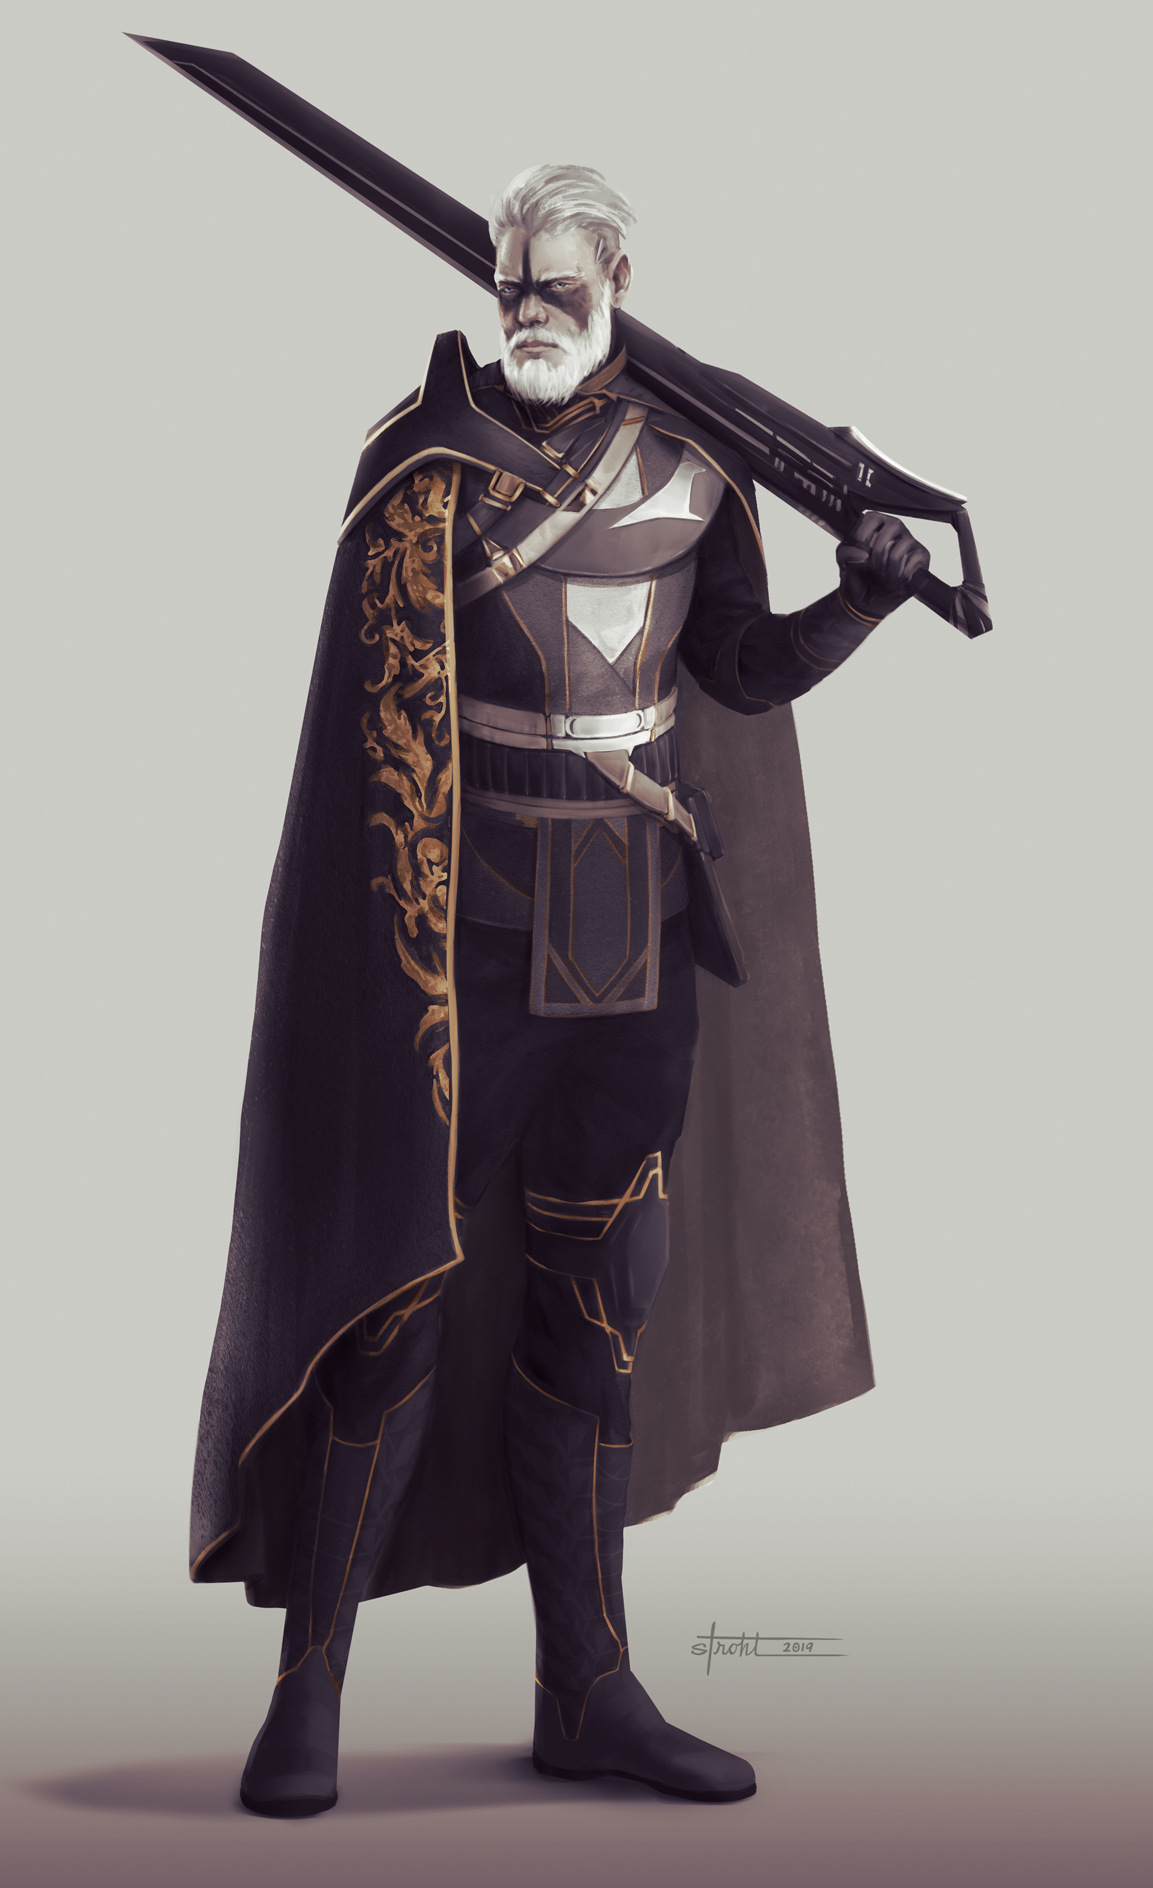 Battle Royale Character 2 by Jessica Strohl